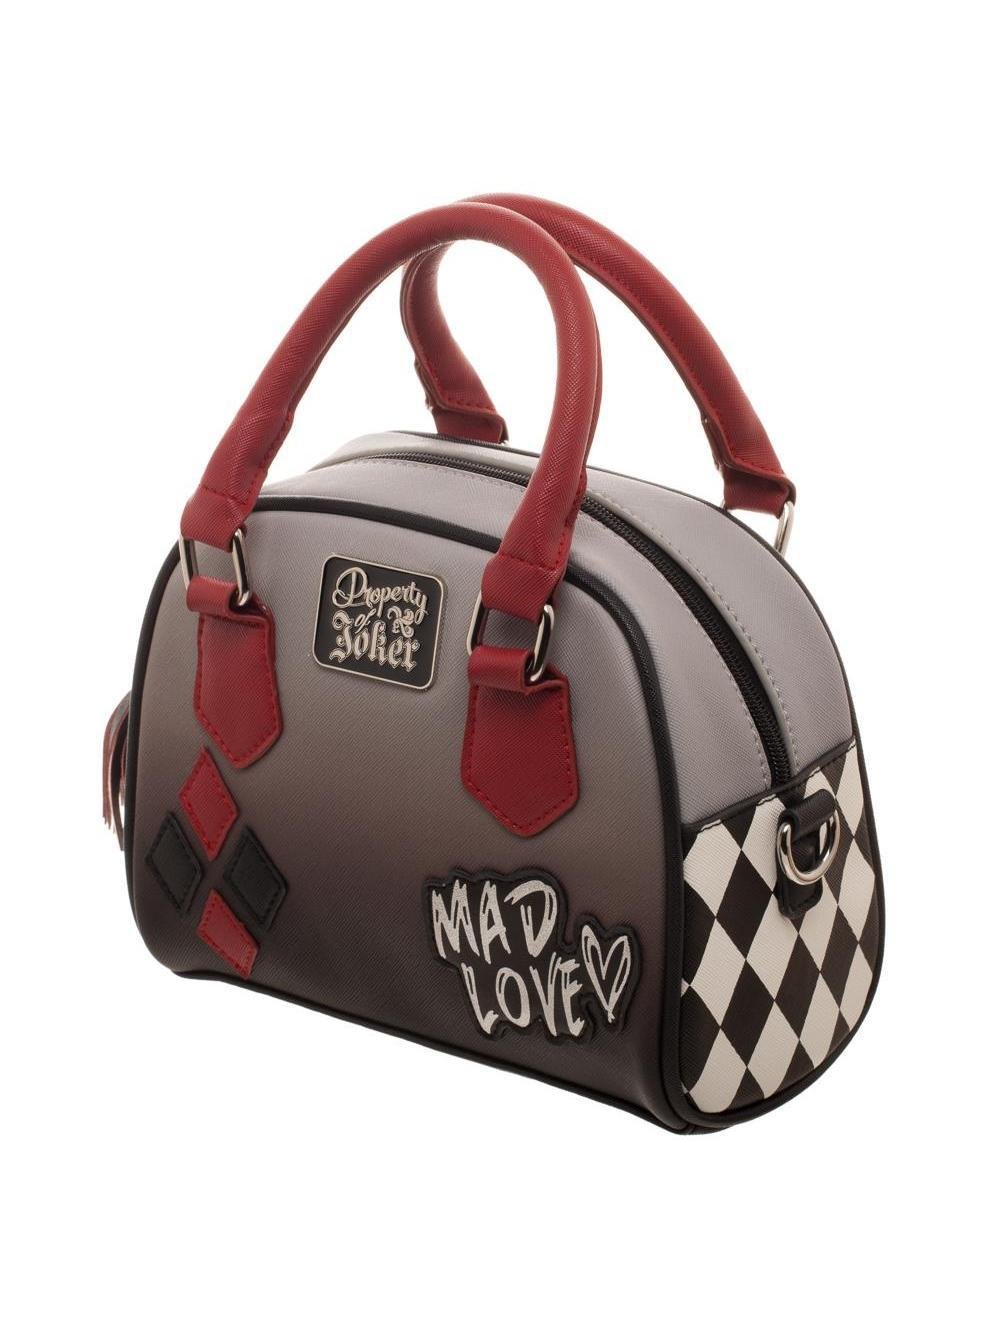 SUICIDE SQUAD - Mad Love Mini Bowler Handbag